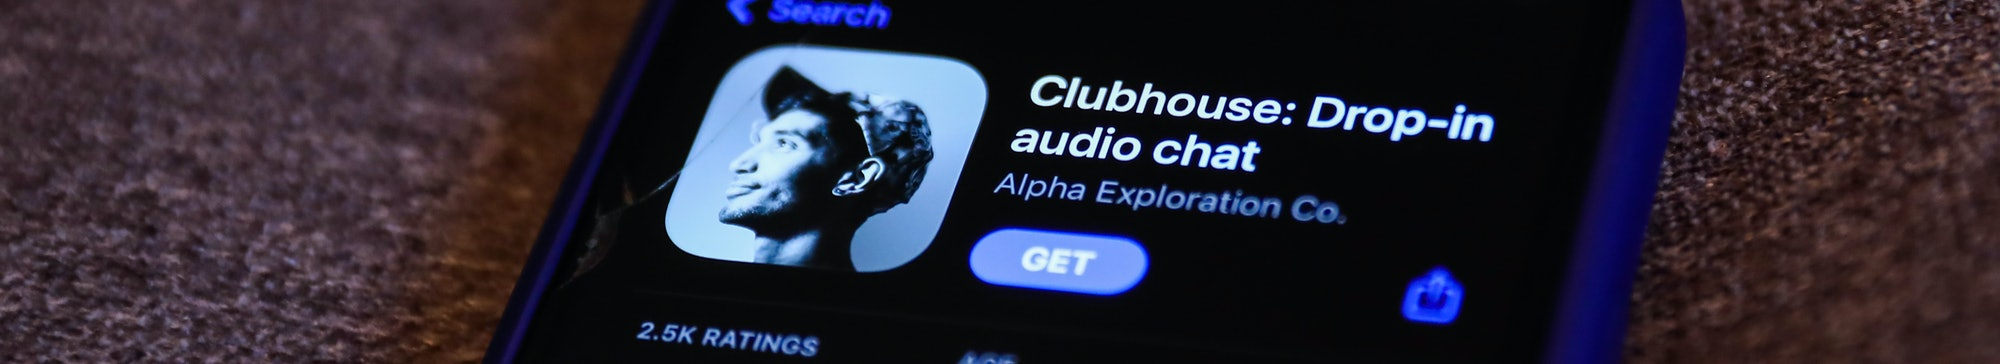 Clubhouse Drop-in audio chat app logo on the App Store is seen displayed on a phone screen in this i...